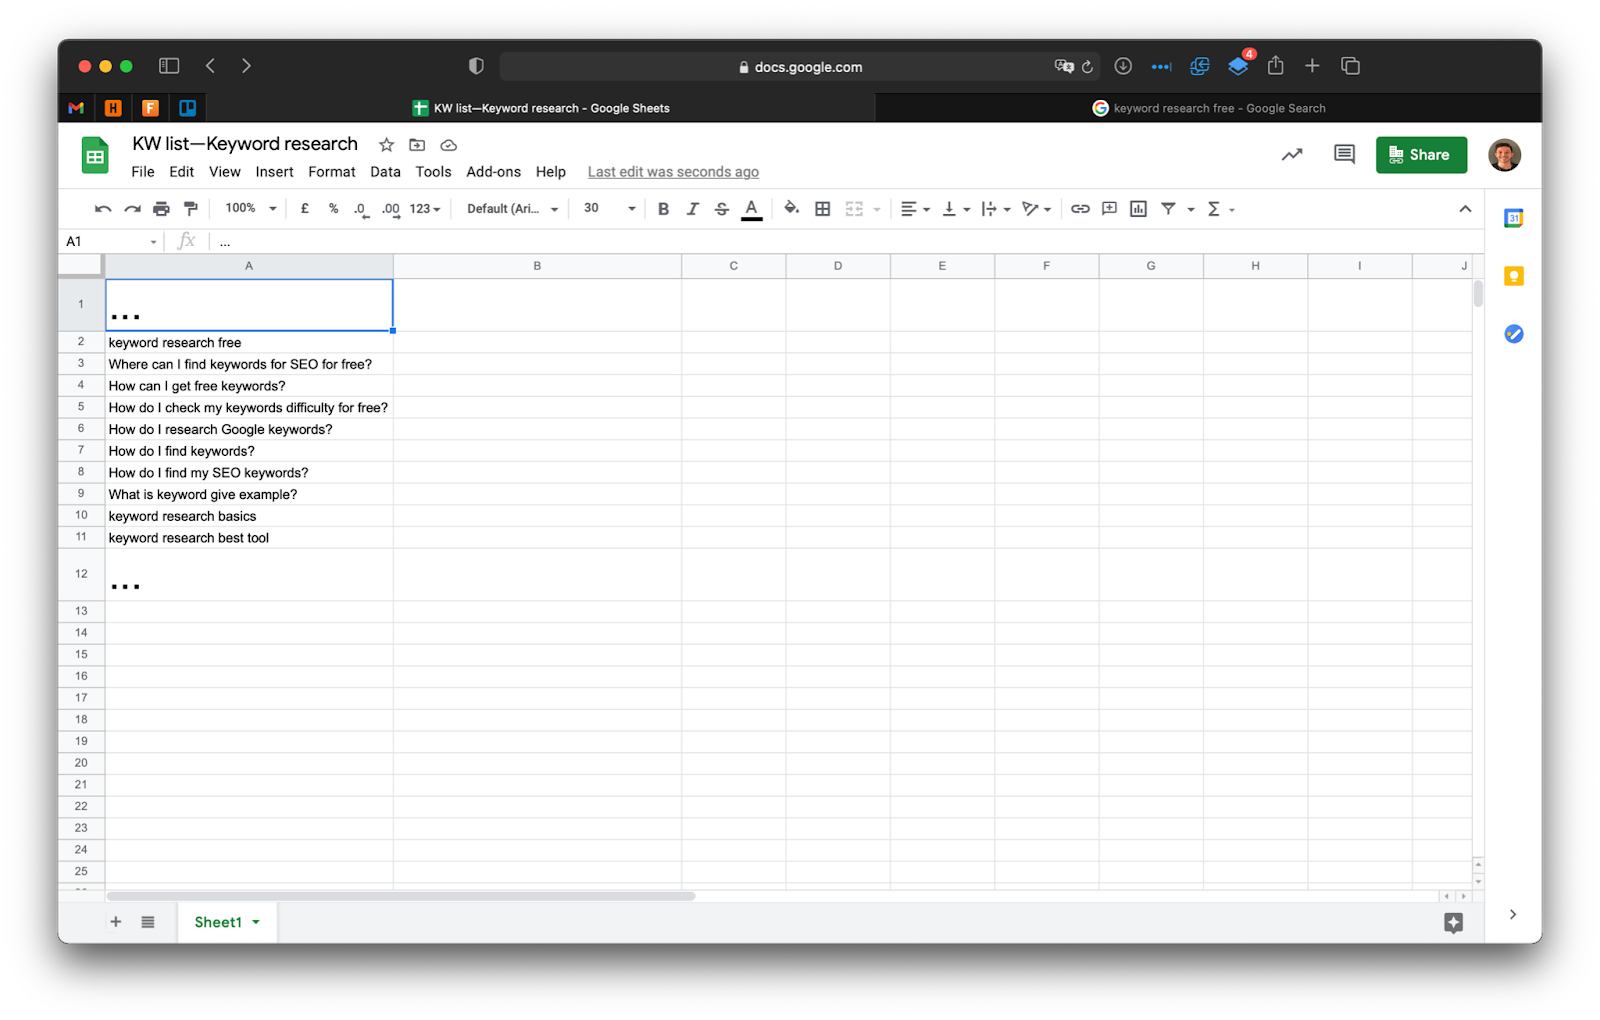 A screenshot of my spreadsheet with some example keywords.